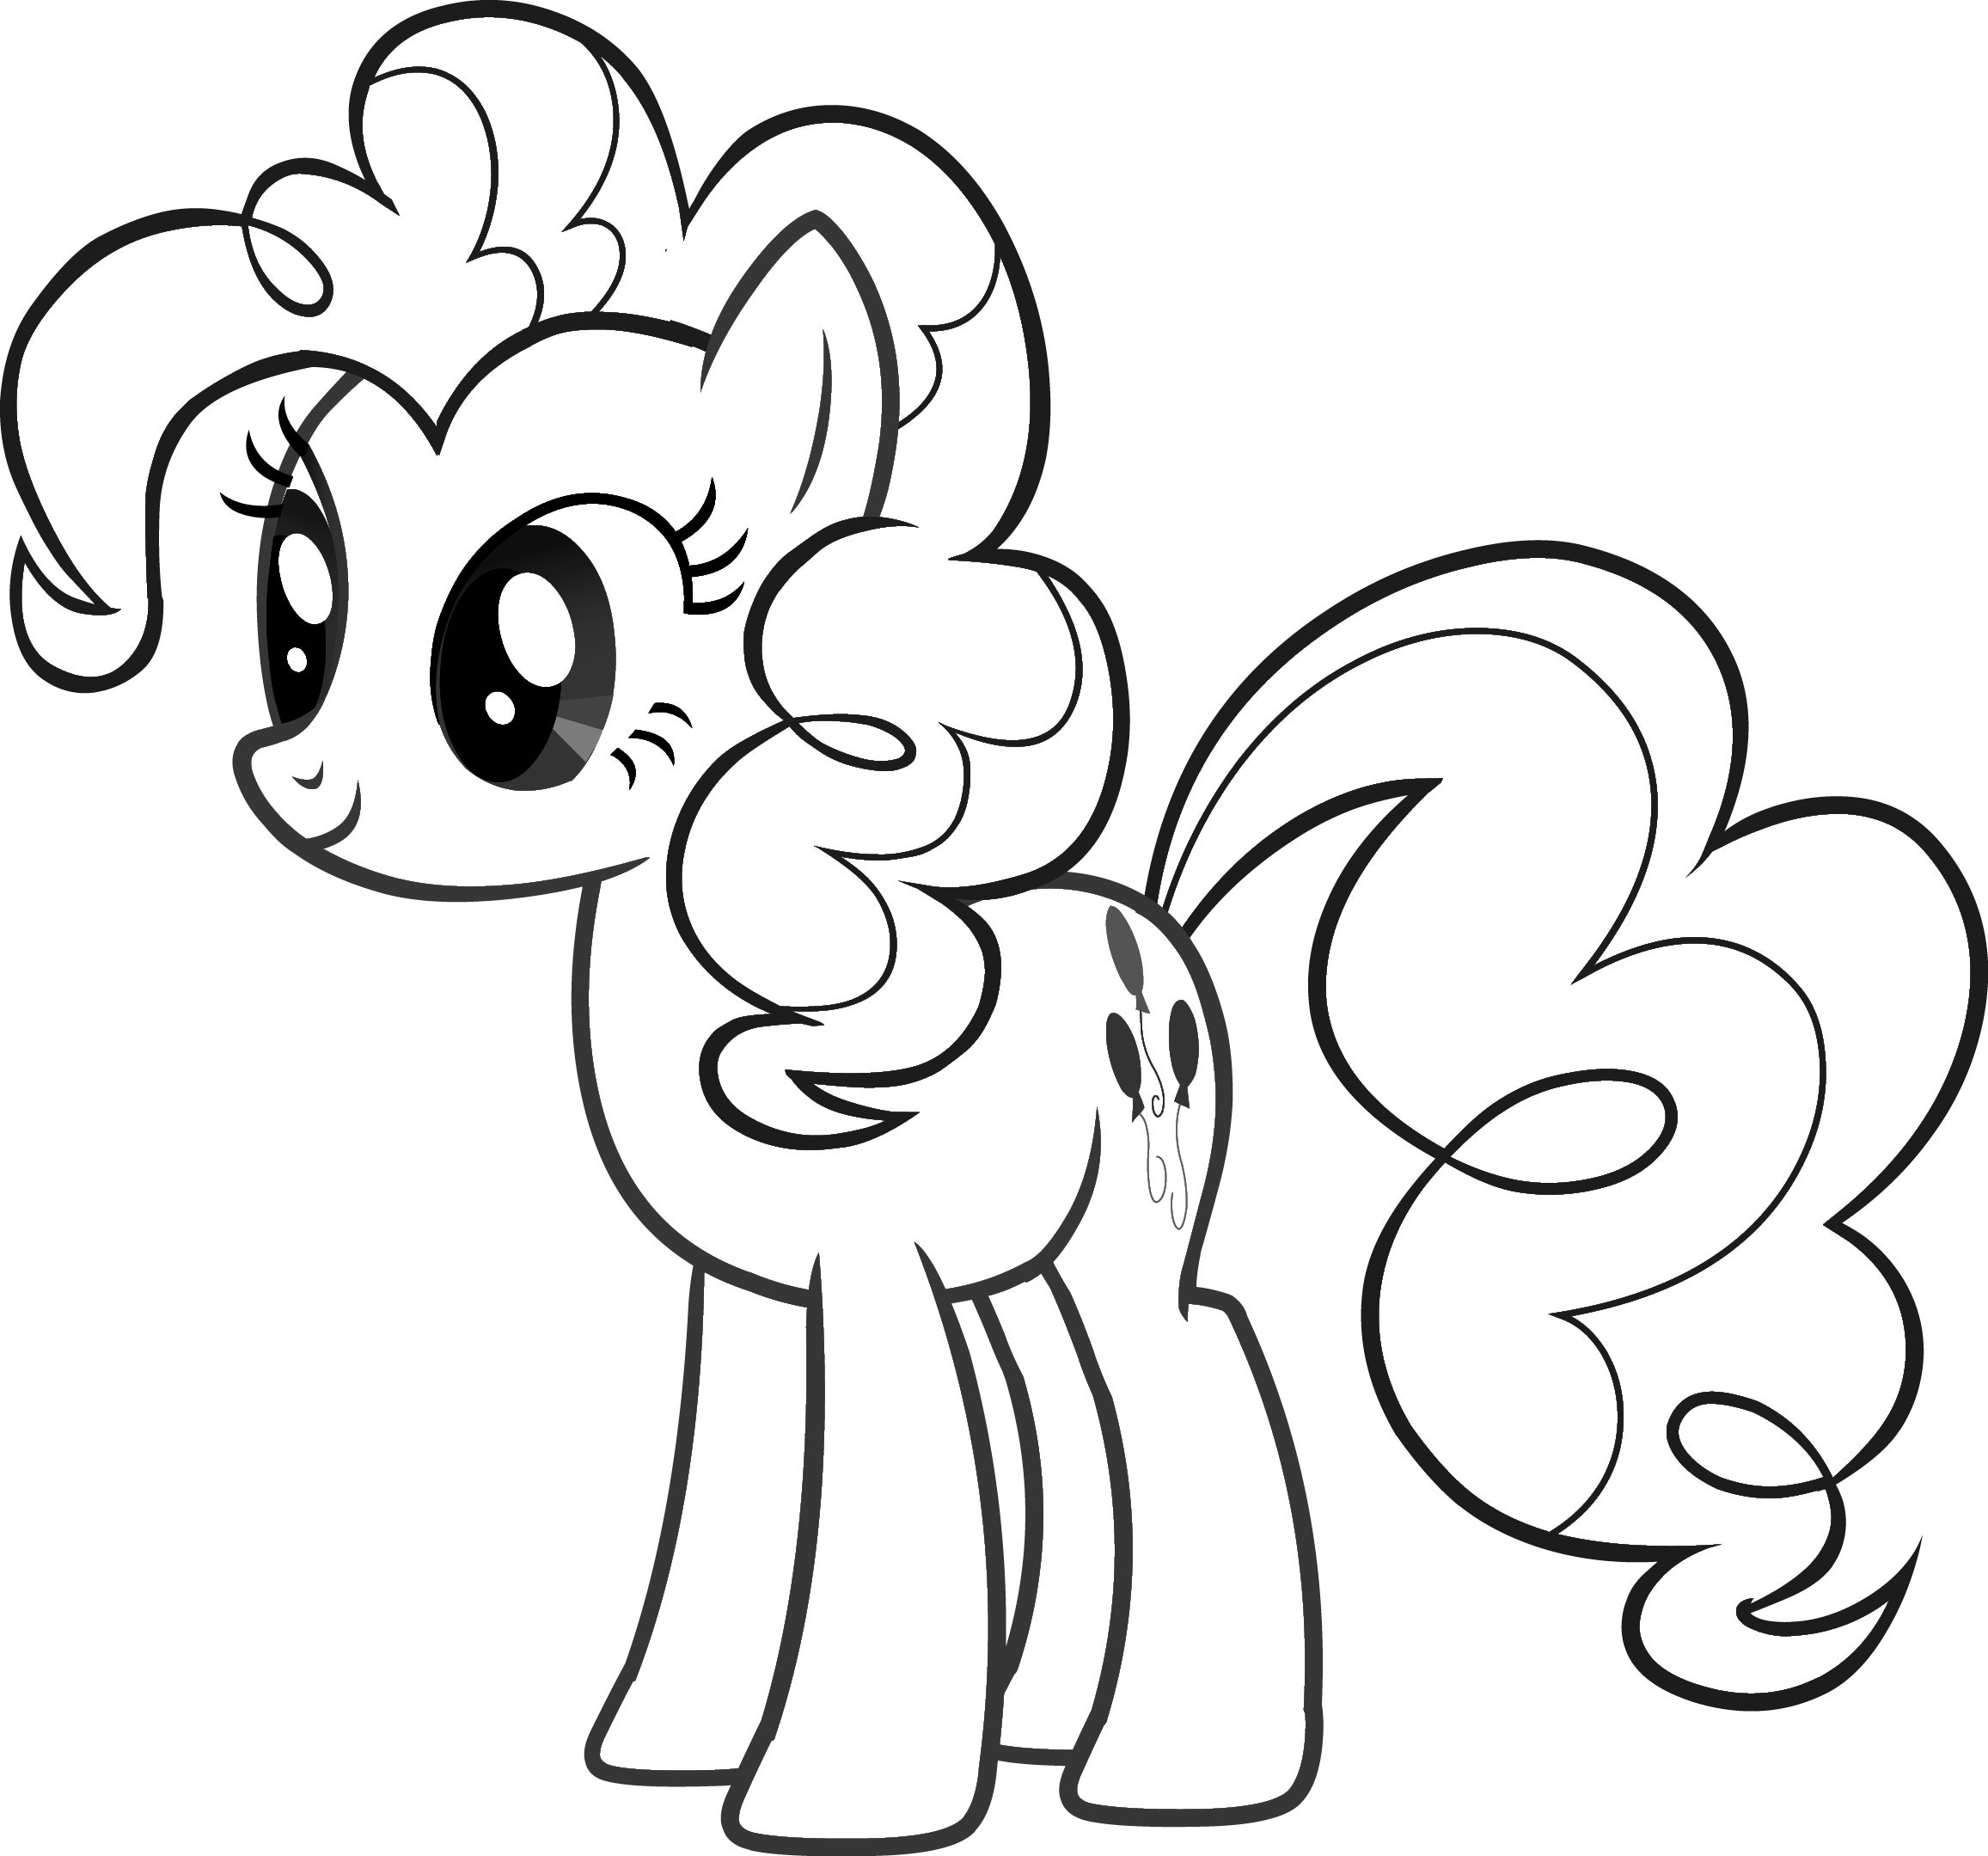 My Little Pony Coloring Pages Coloring Pages For Kids 2 Free